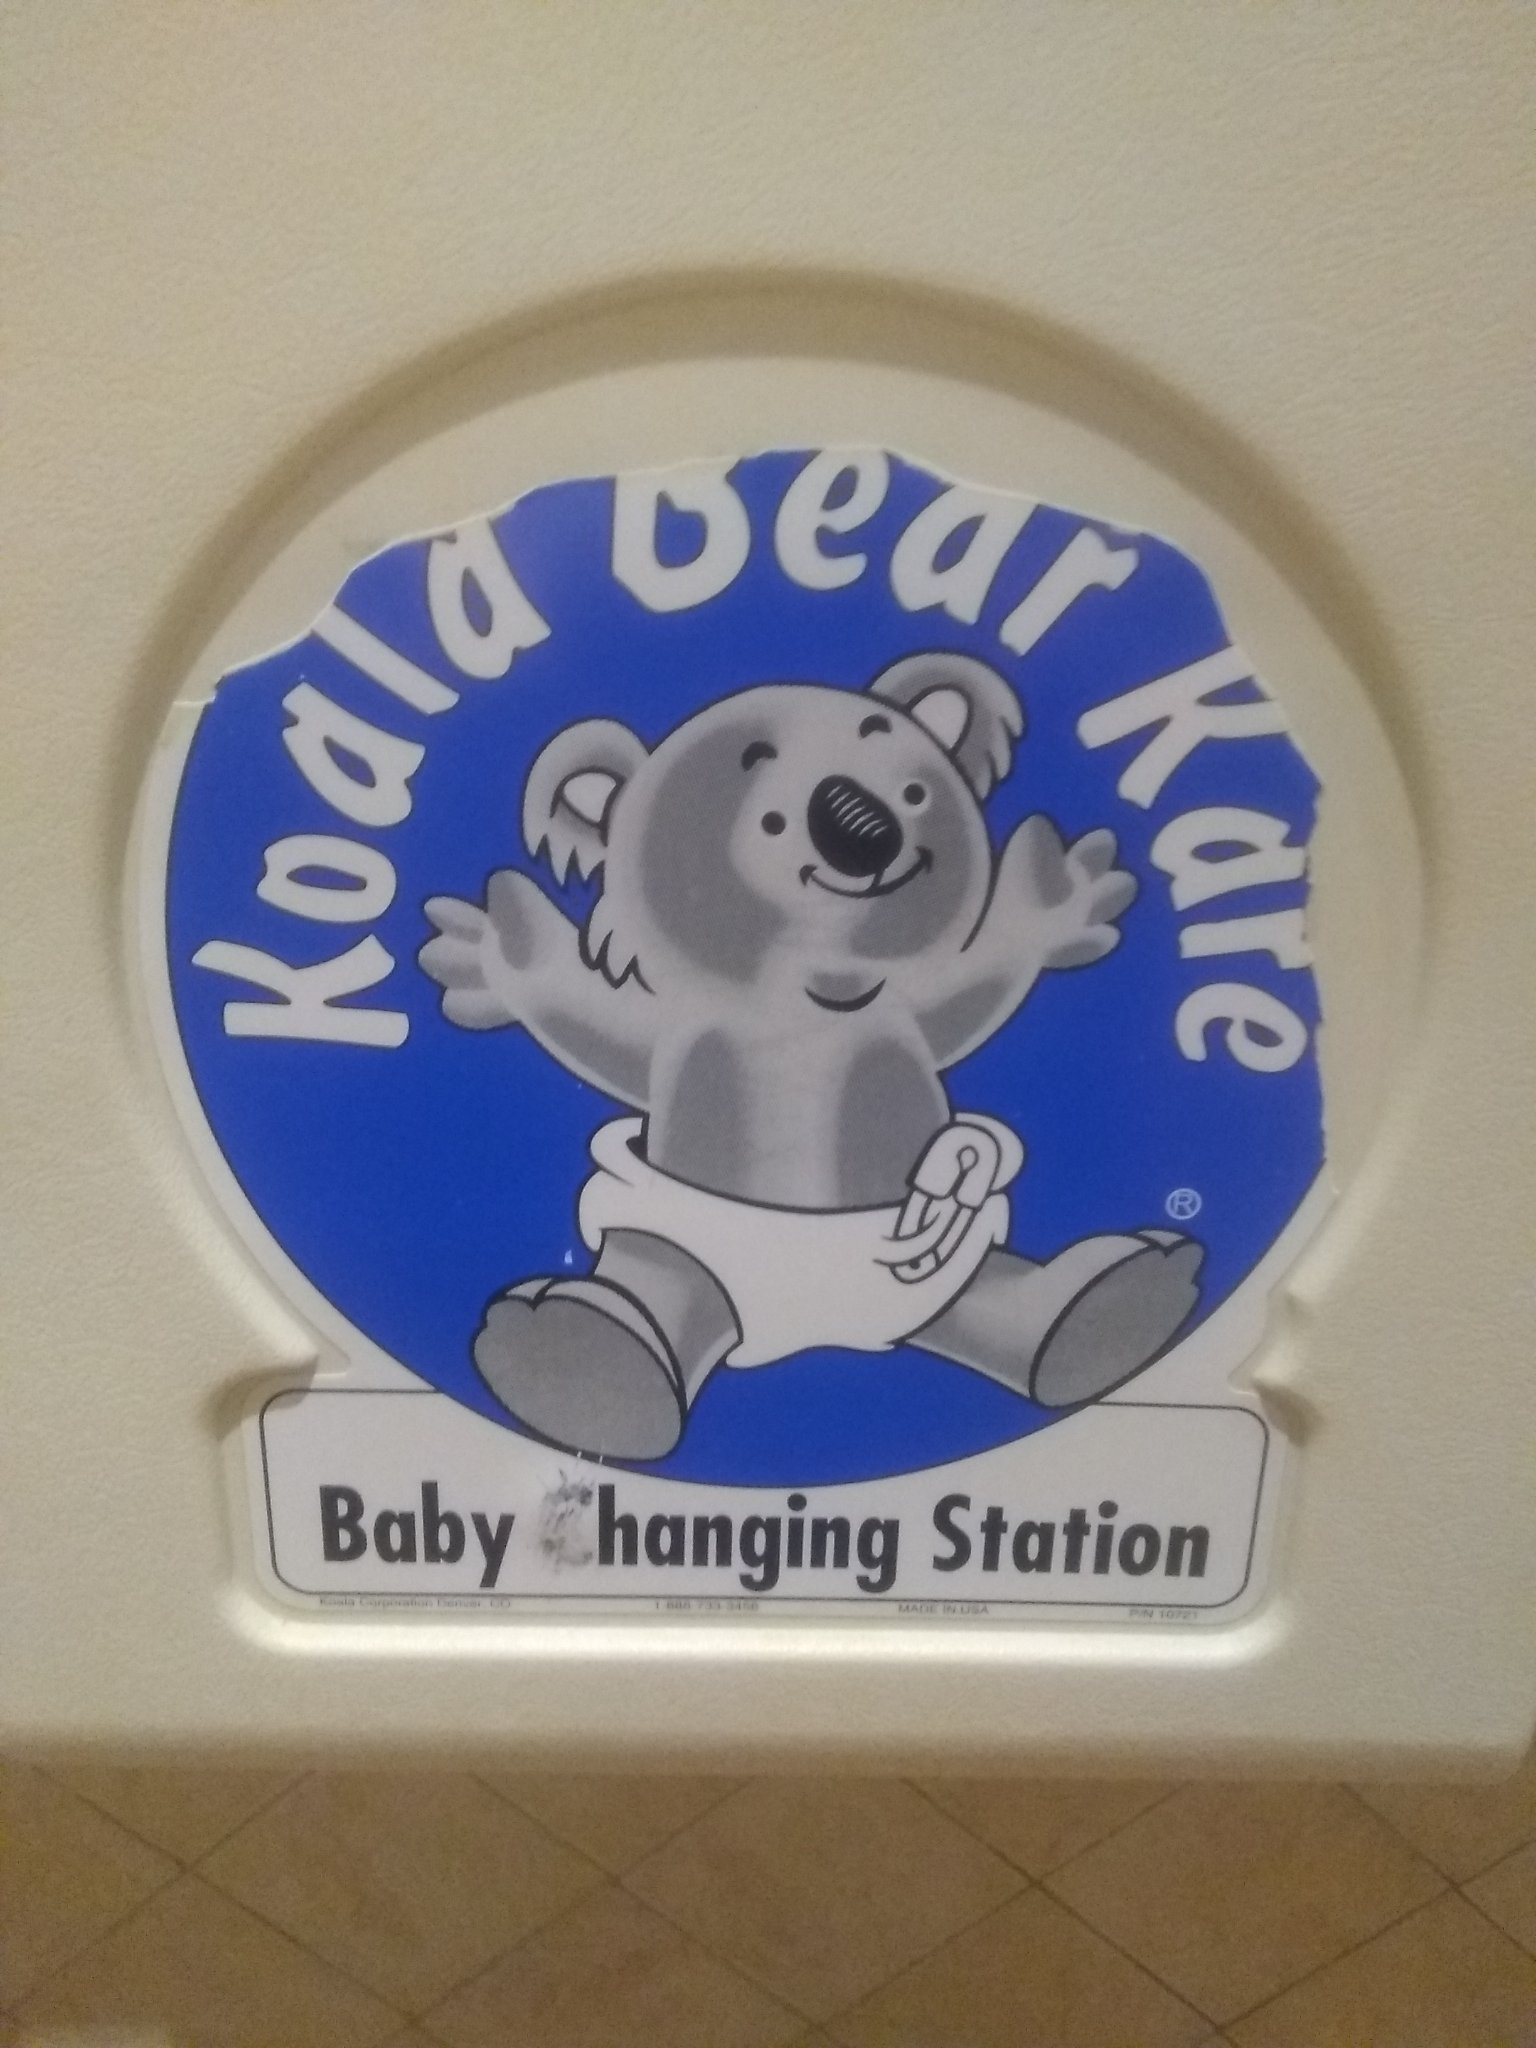 Baby Hanging Station - from Olive Garden - meme